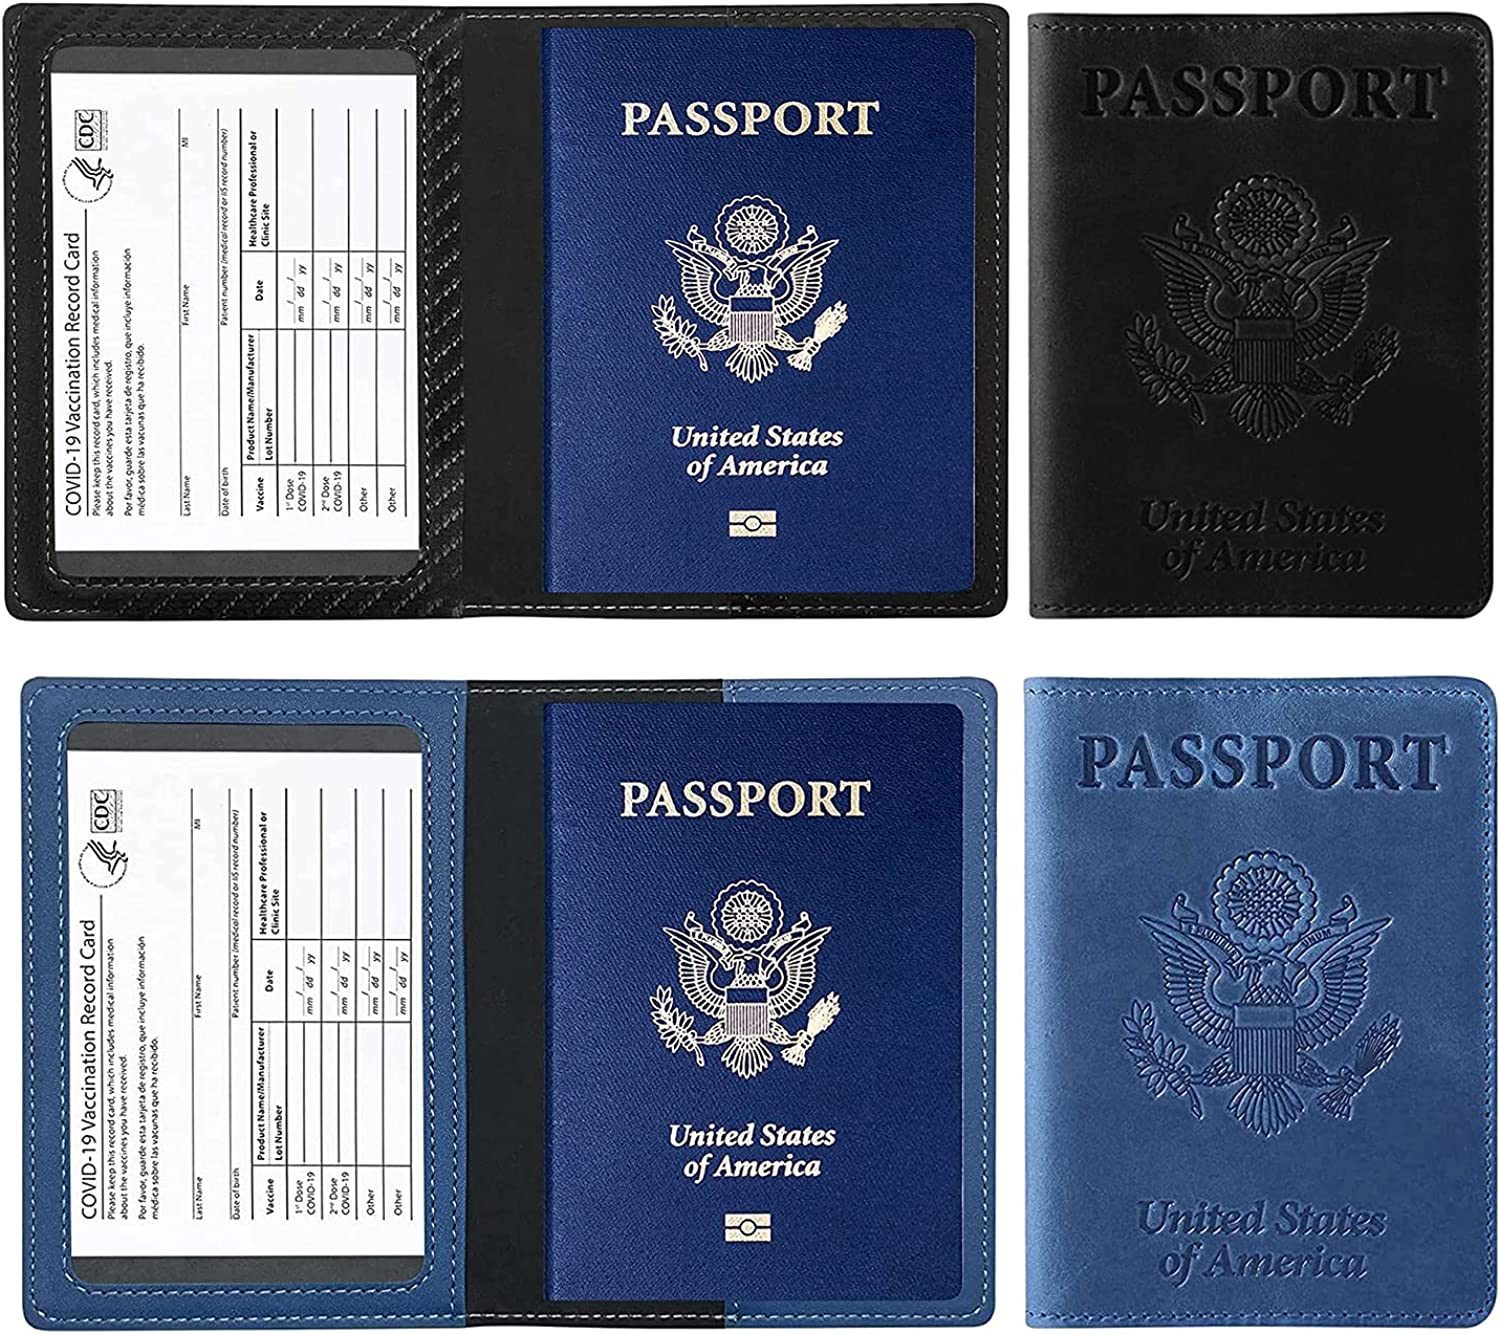 2 PCS Multifunctional PU Leather Hol Passport Max 67% OFF Vaccine Card Cover Kansas City Mall